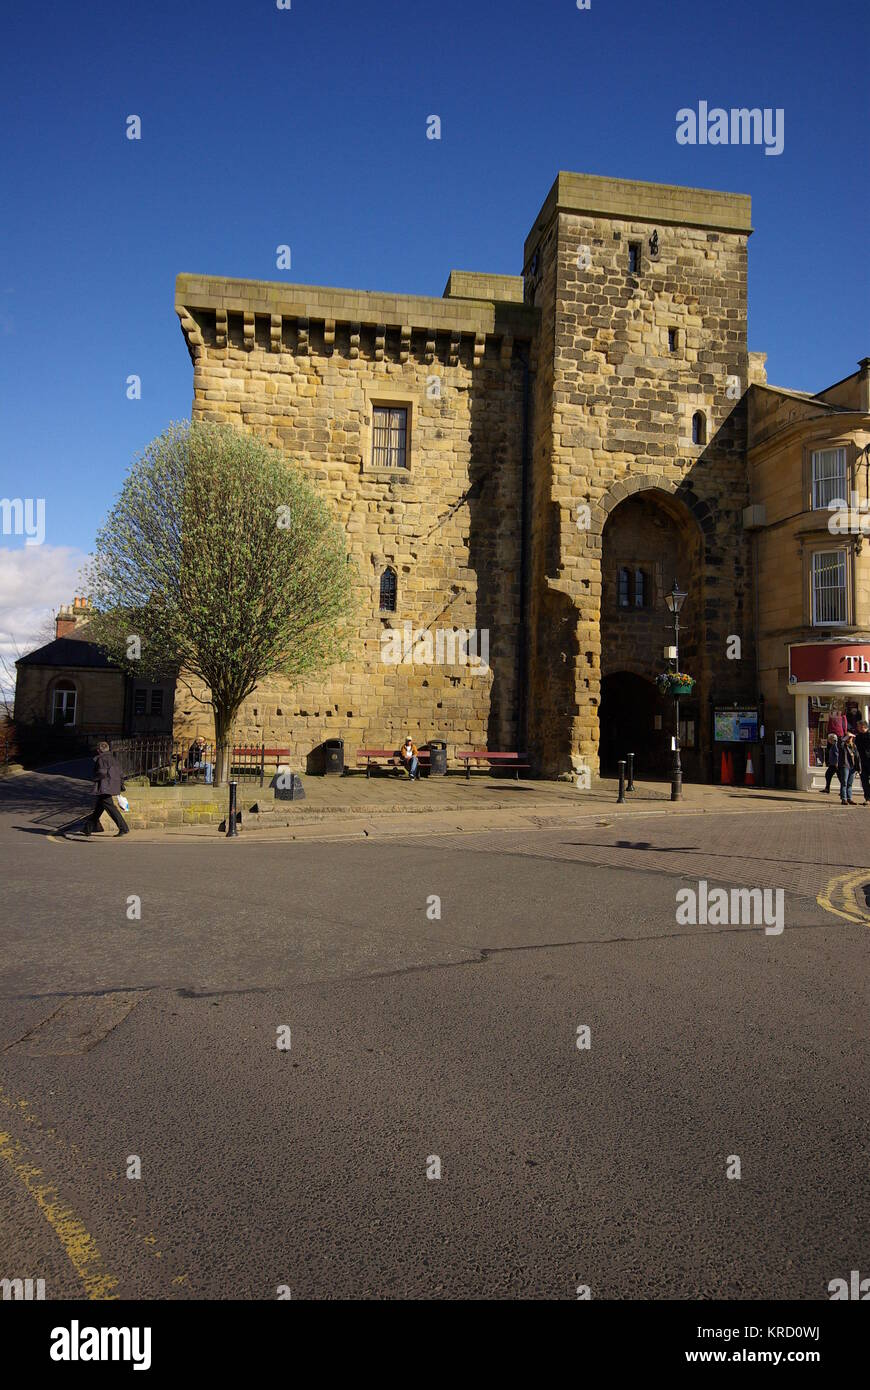 Hexham Old Gaol and Moot Hall, Northumberland.  The gaol was built in 1330-33 and is said to be the oldest purpose - Stock Image